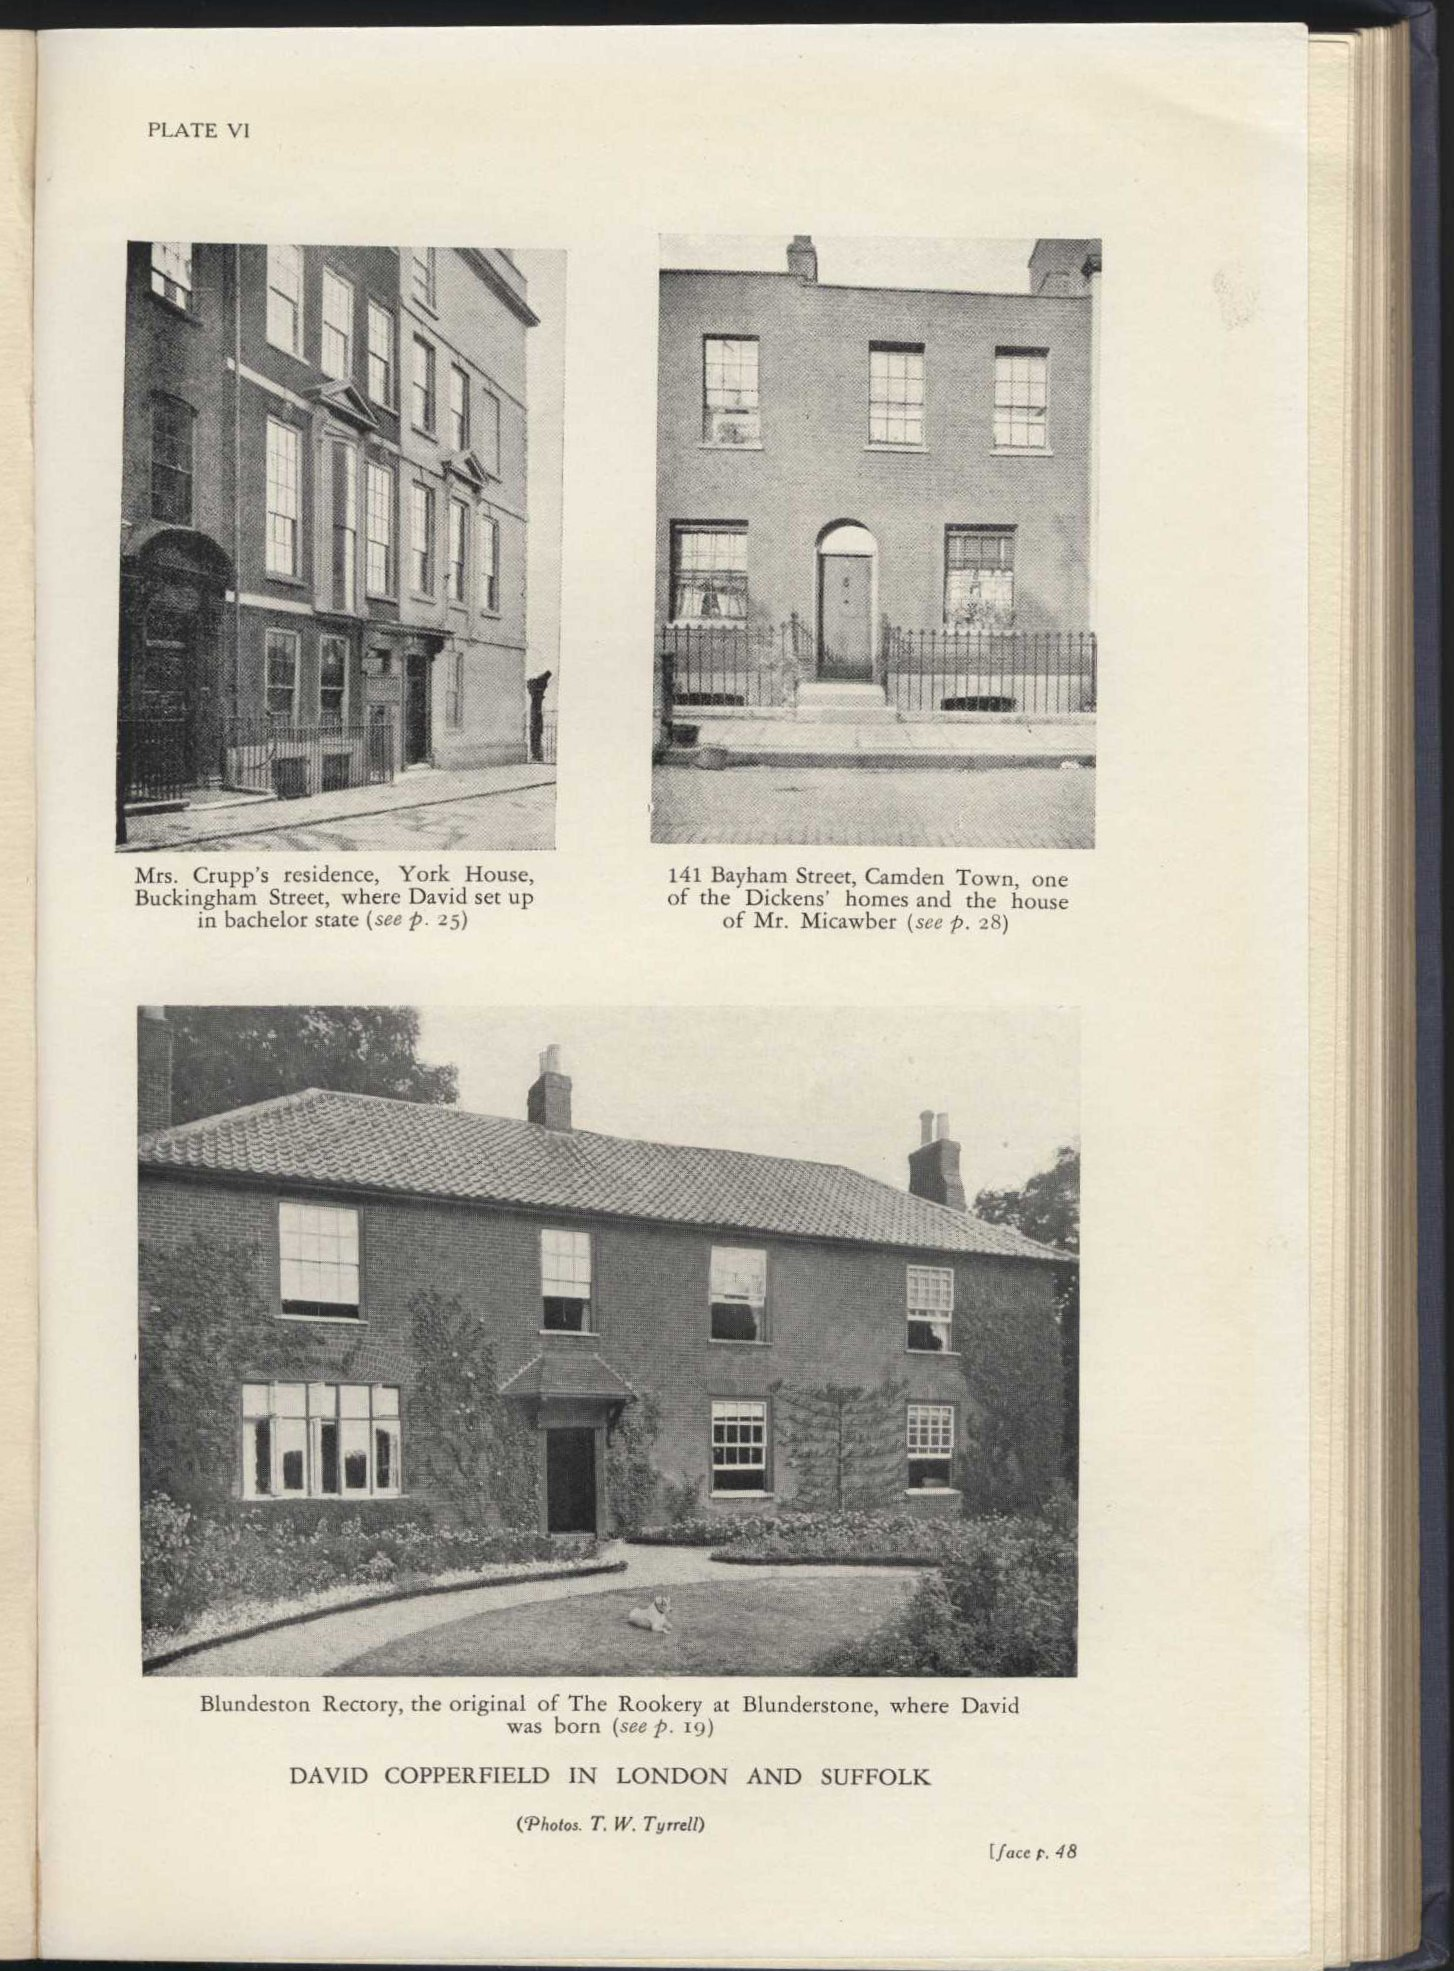 Arthur L. Hayward. The Dickens encyclopaedia. London: George Routledge and Sons, 1931. Photographs.